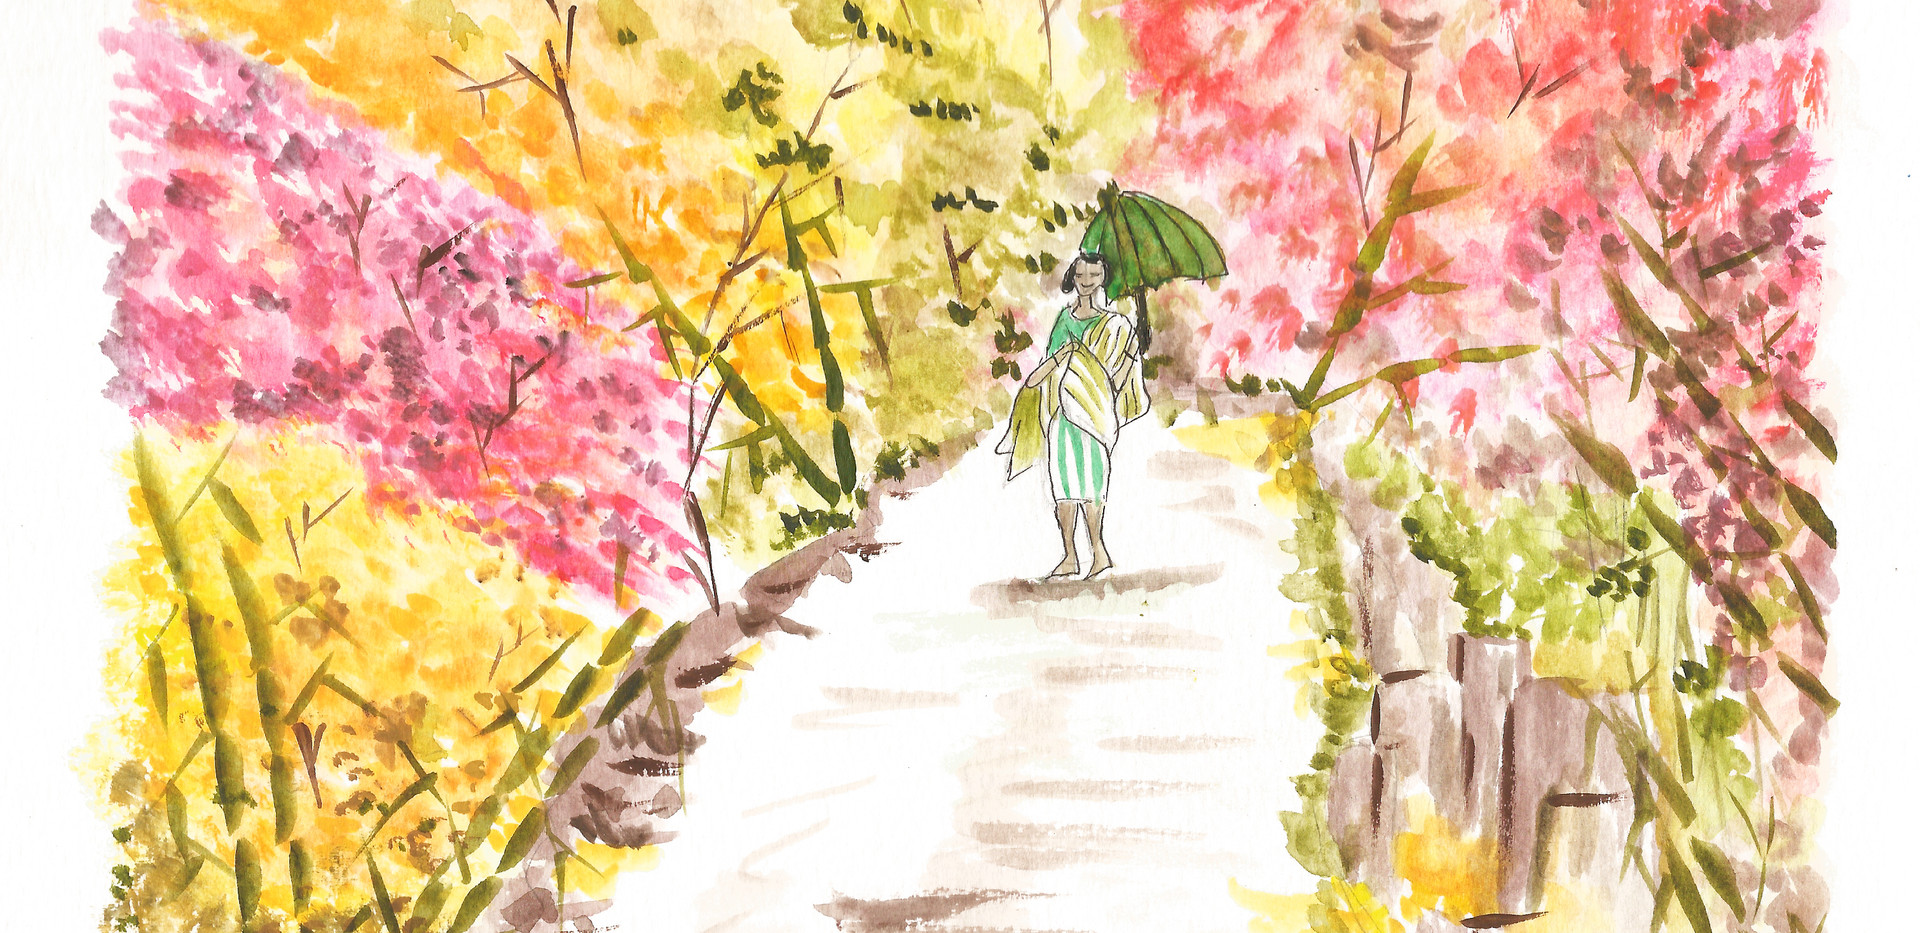 Woman walking inside the Forest